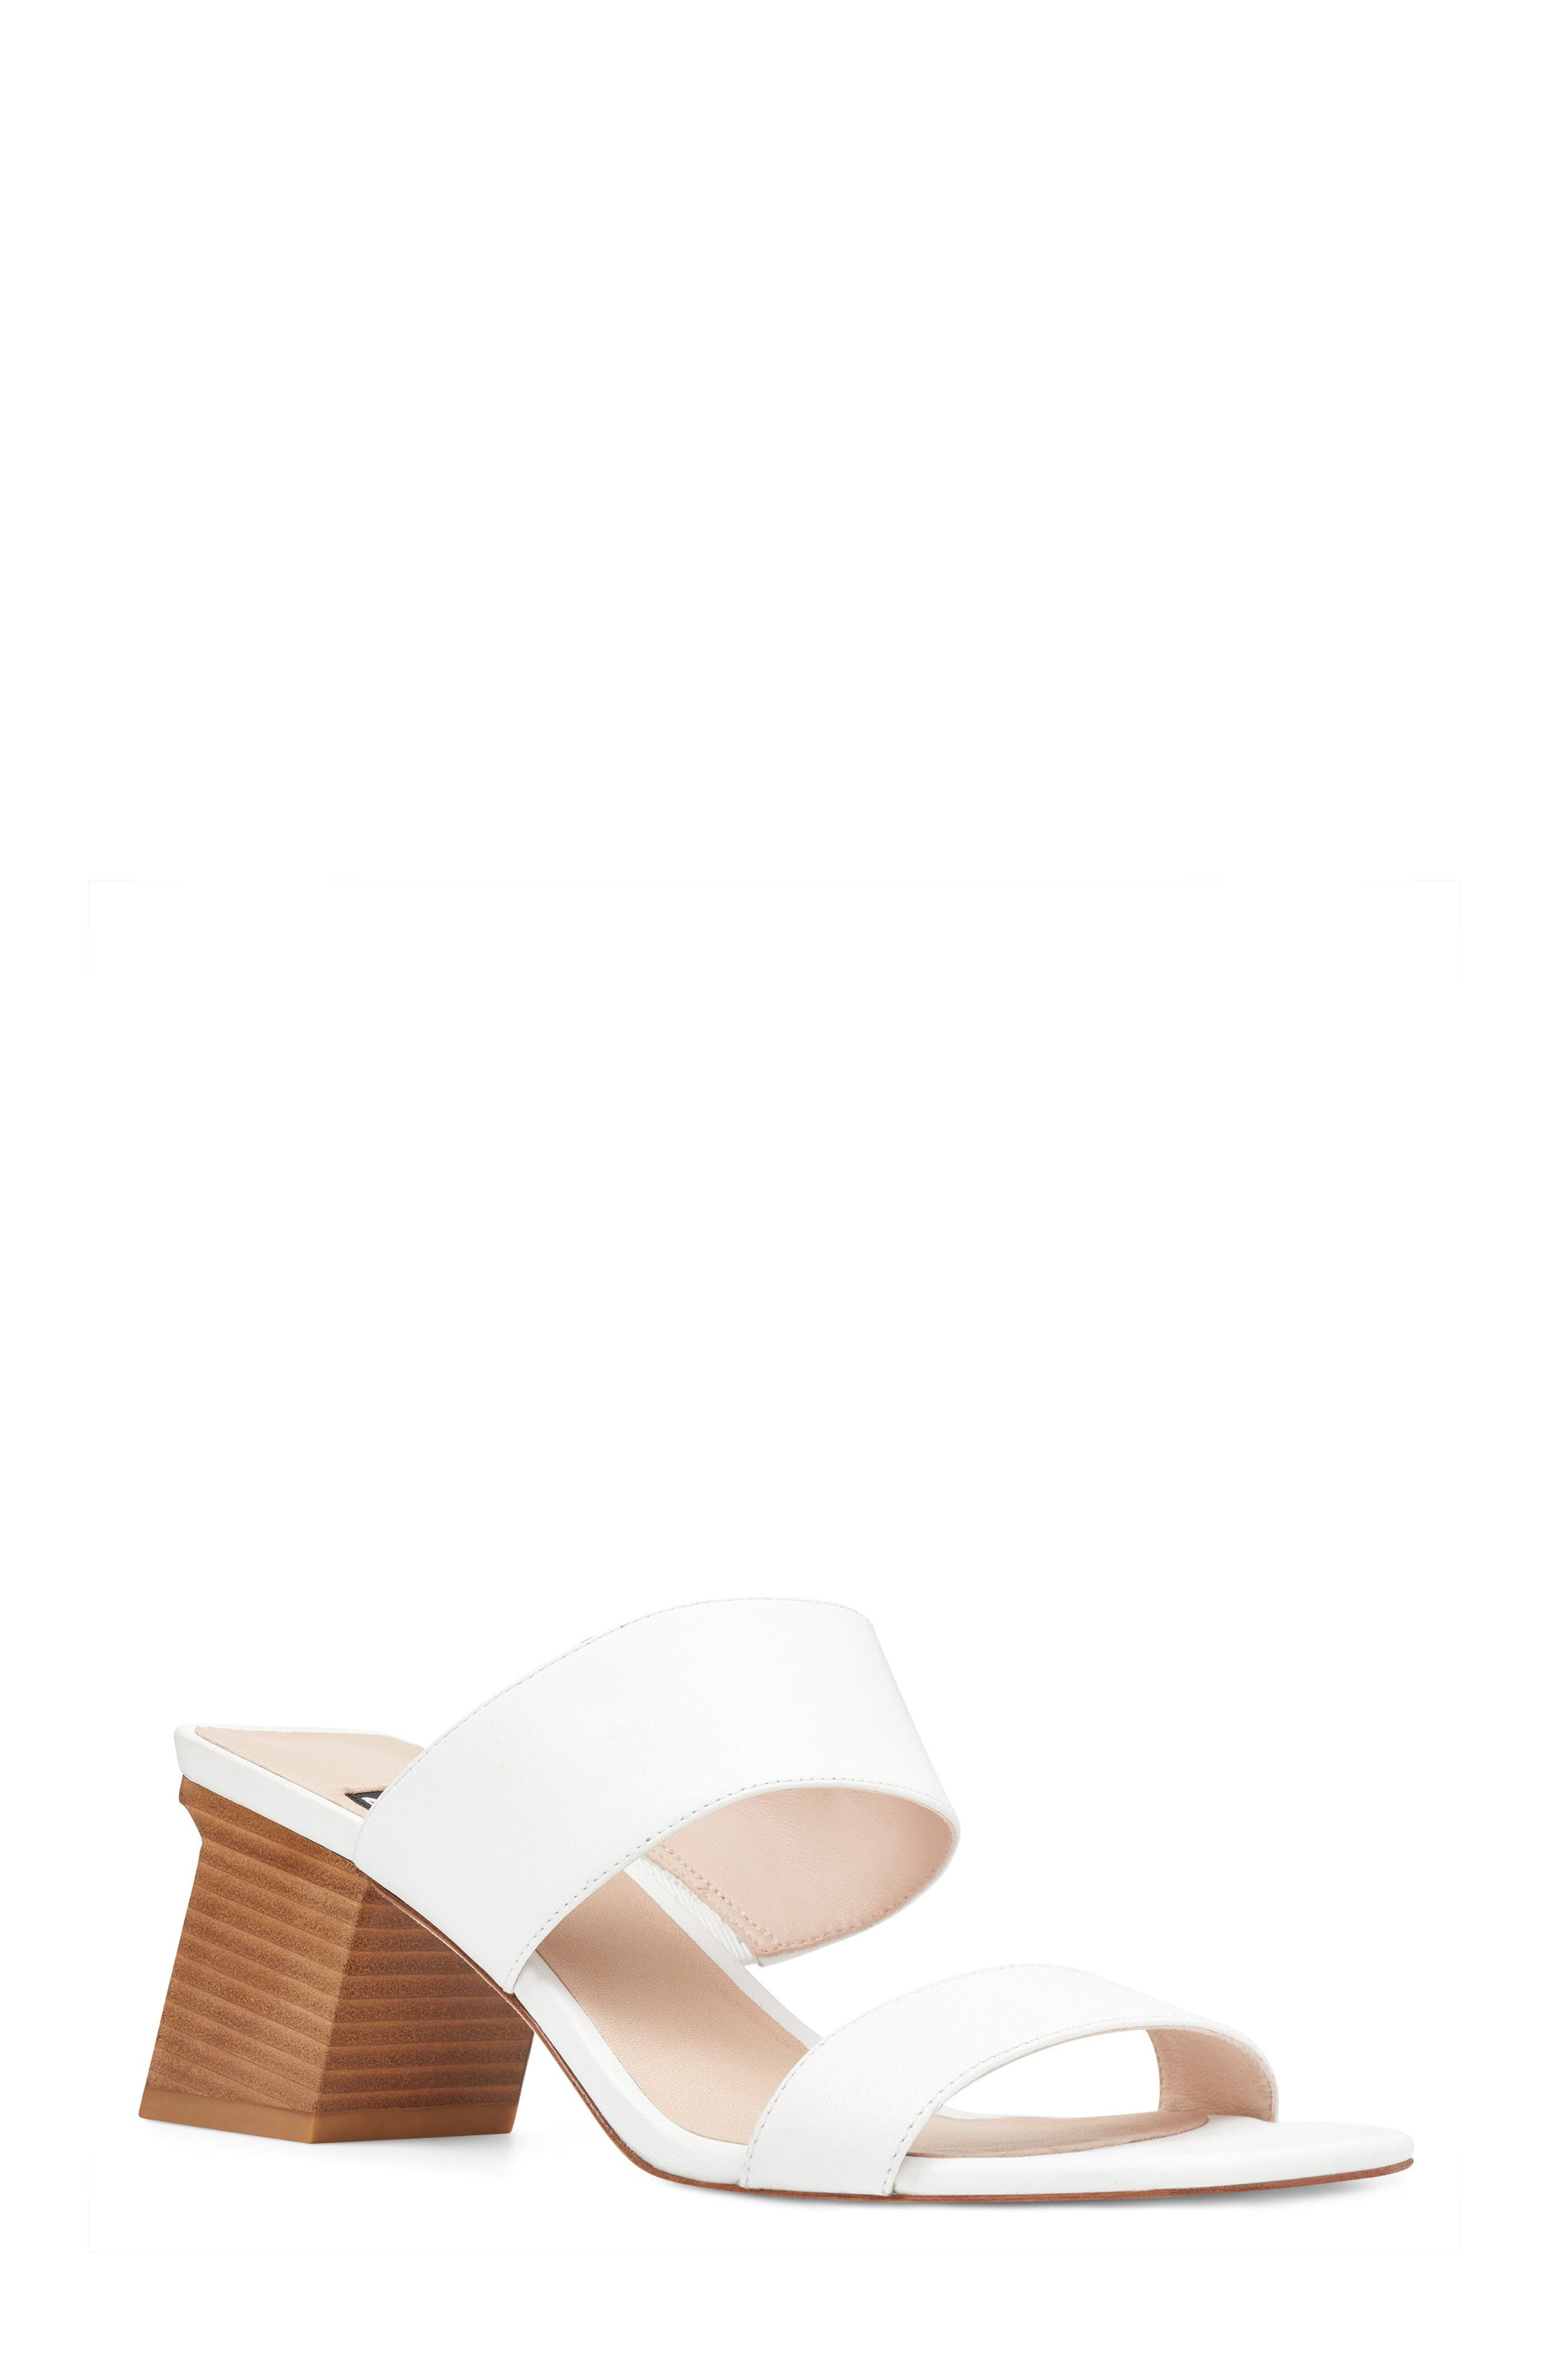 Nine West Churen - 40th Anniversary Capsule Collection Sandal (Women)